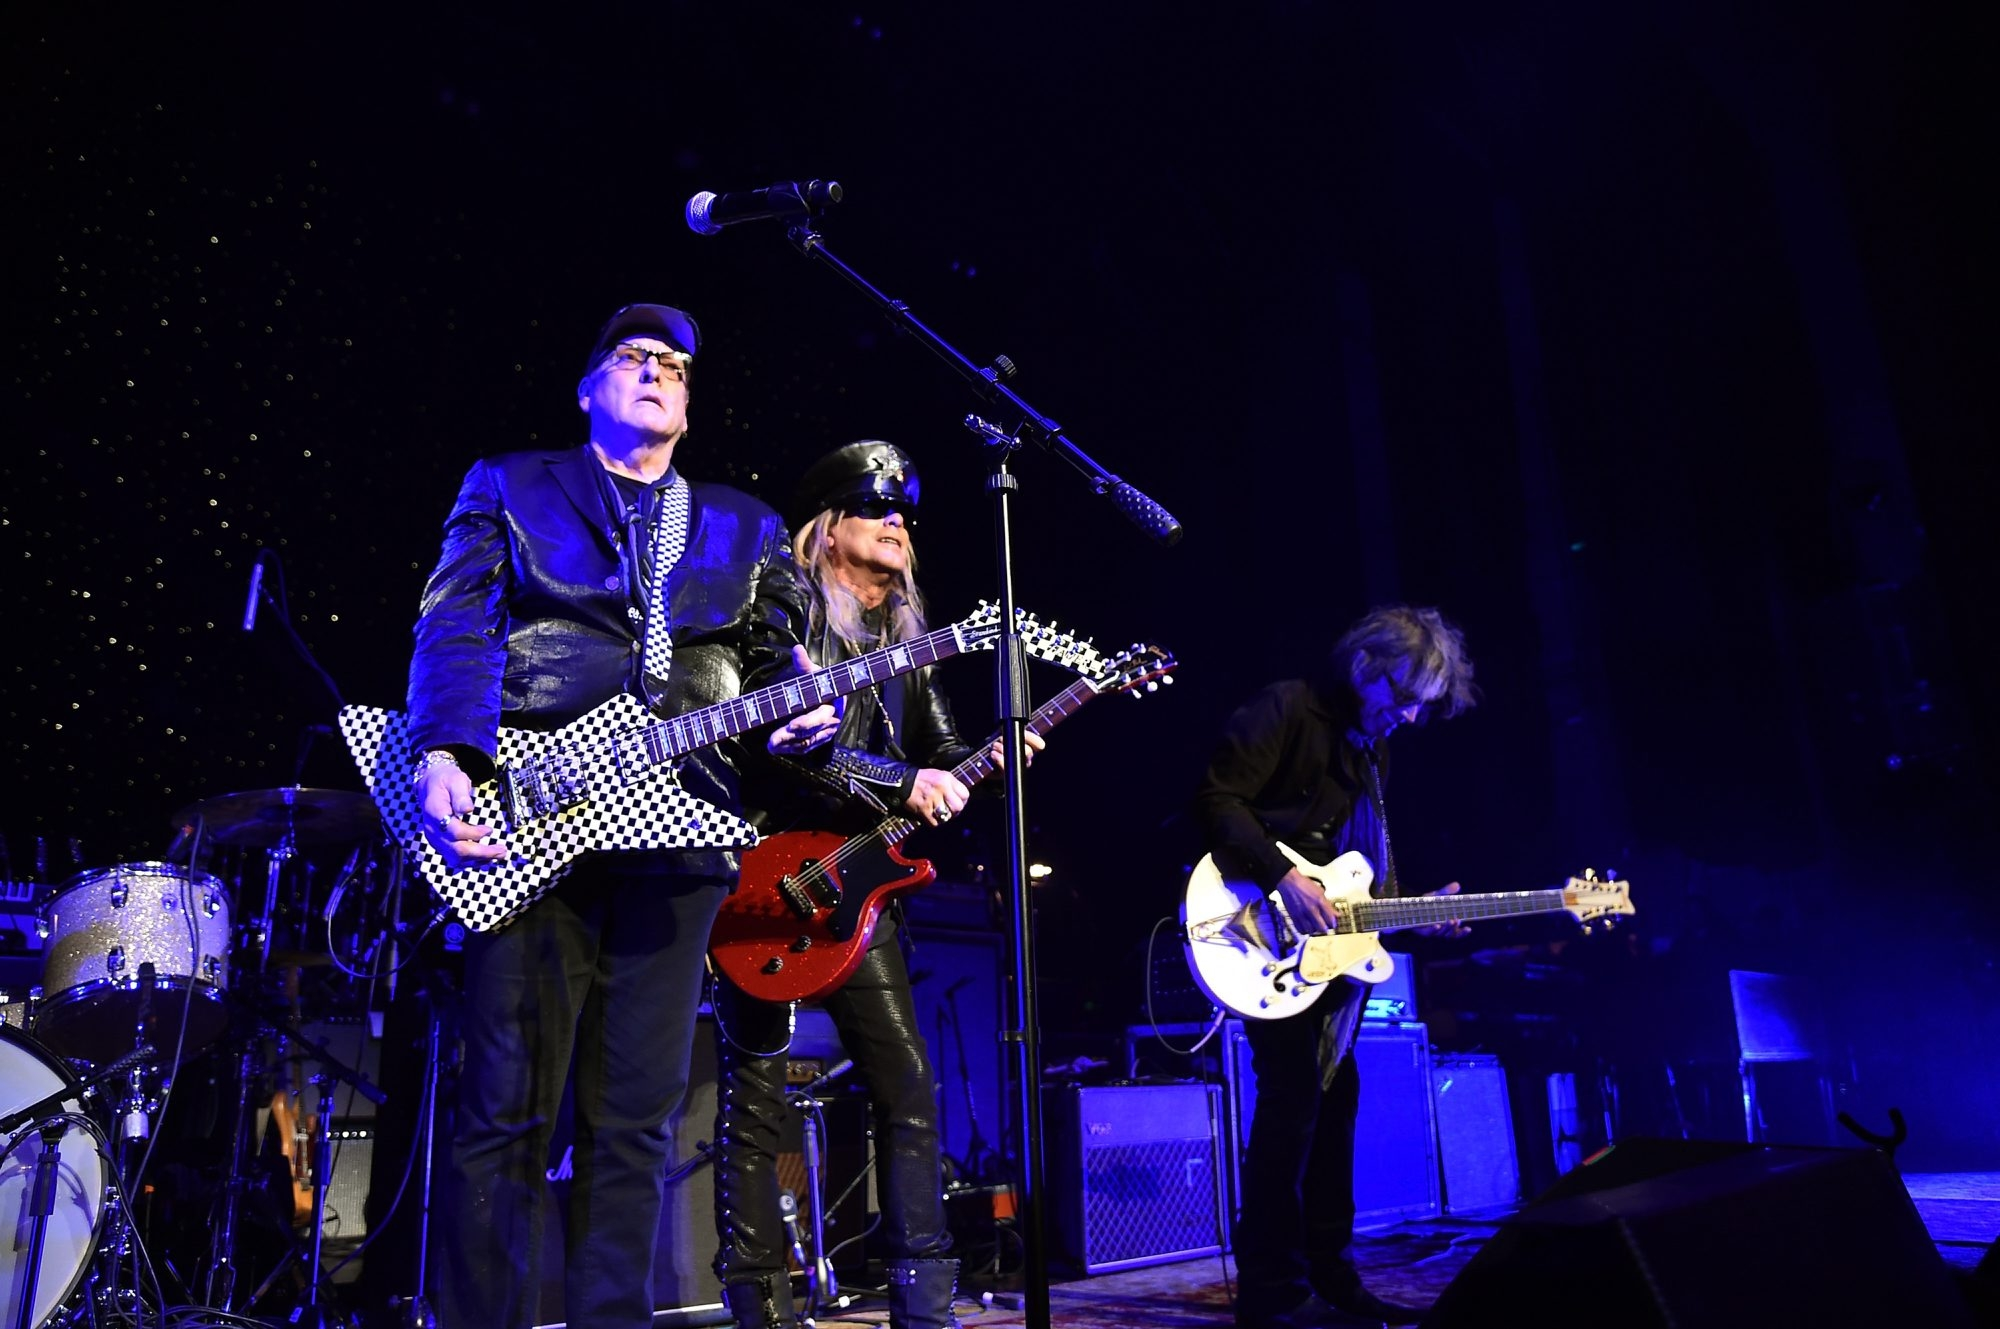 Rick Nielsen, Robin Zander and Tom Petersson of Cheap Trick perform last year in Atlanta. The band, which has had massive commercial success, will be inducted in the Rock and Roll Hall of Fame.